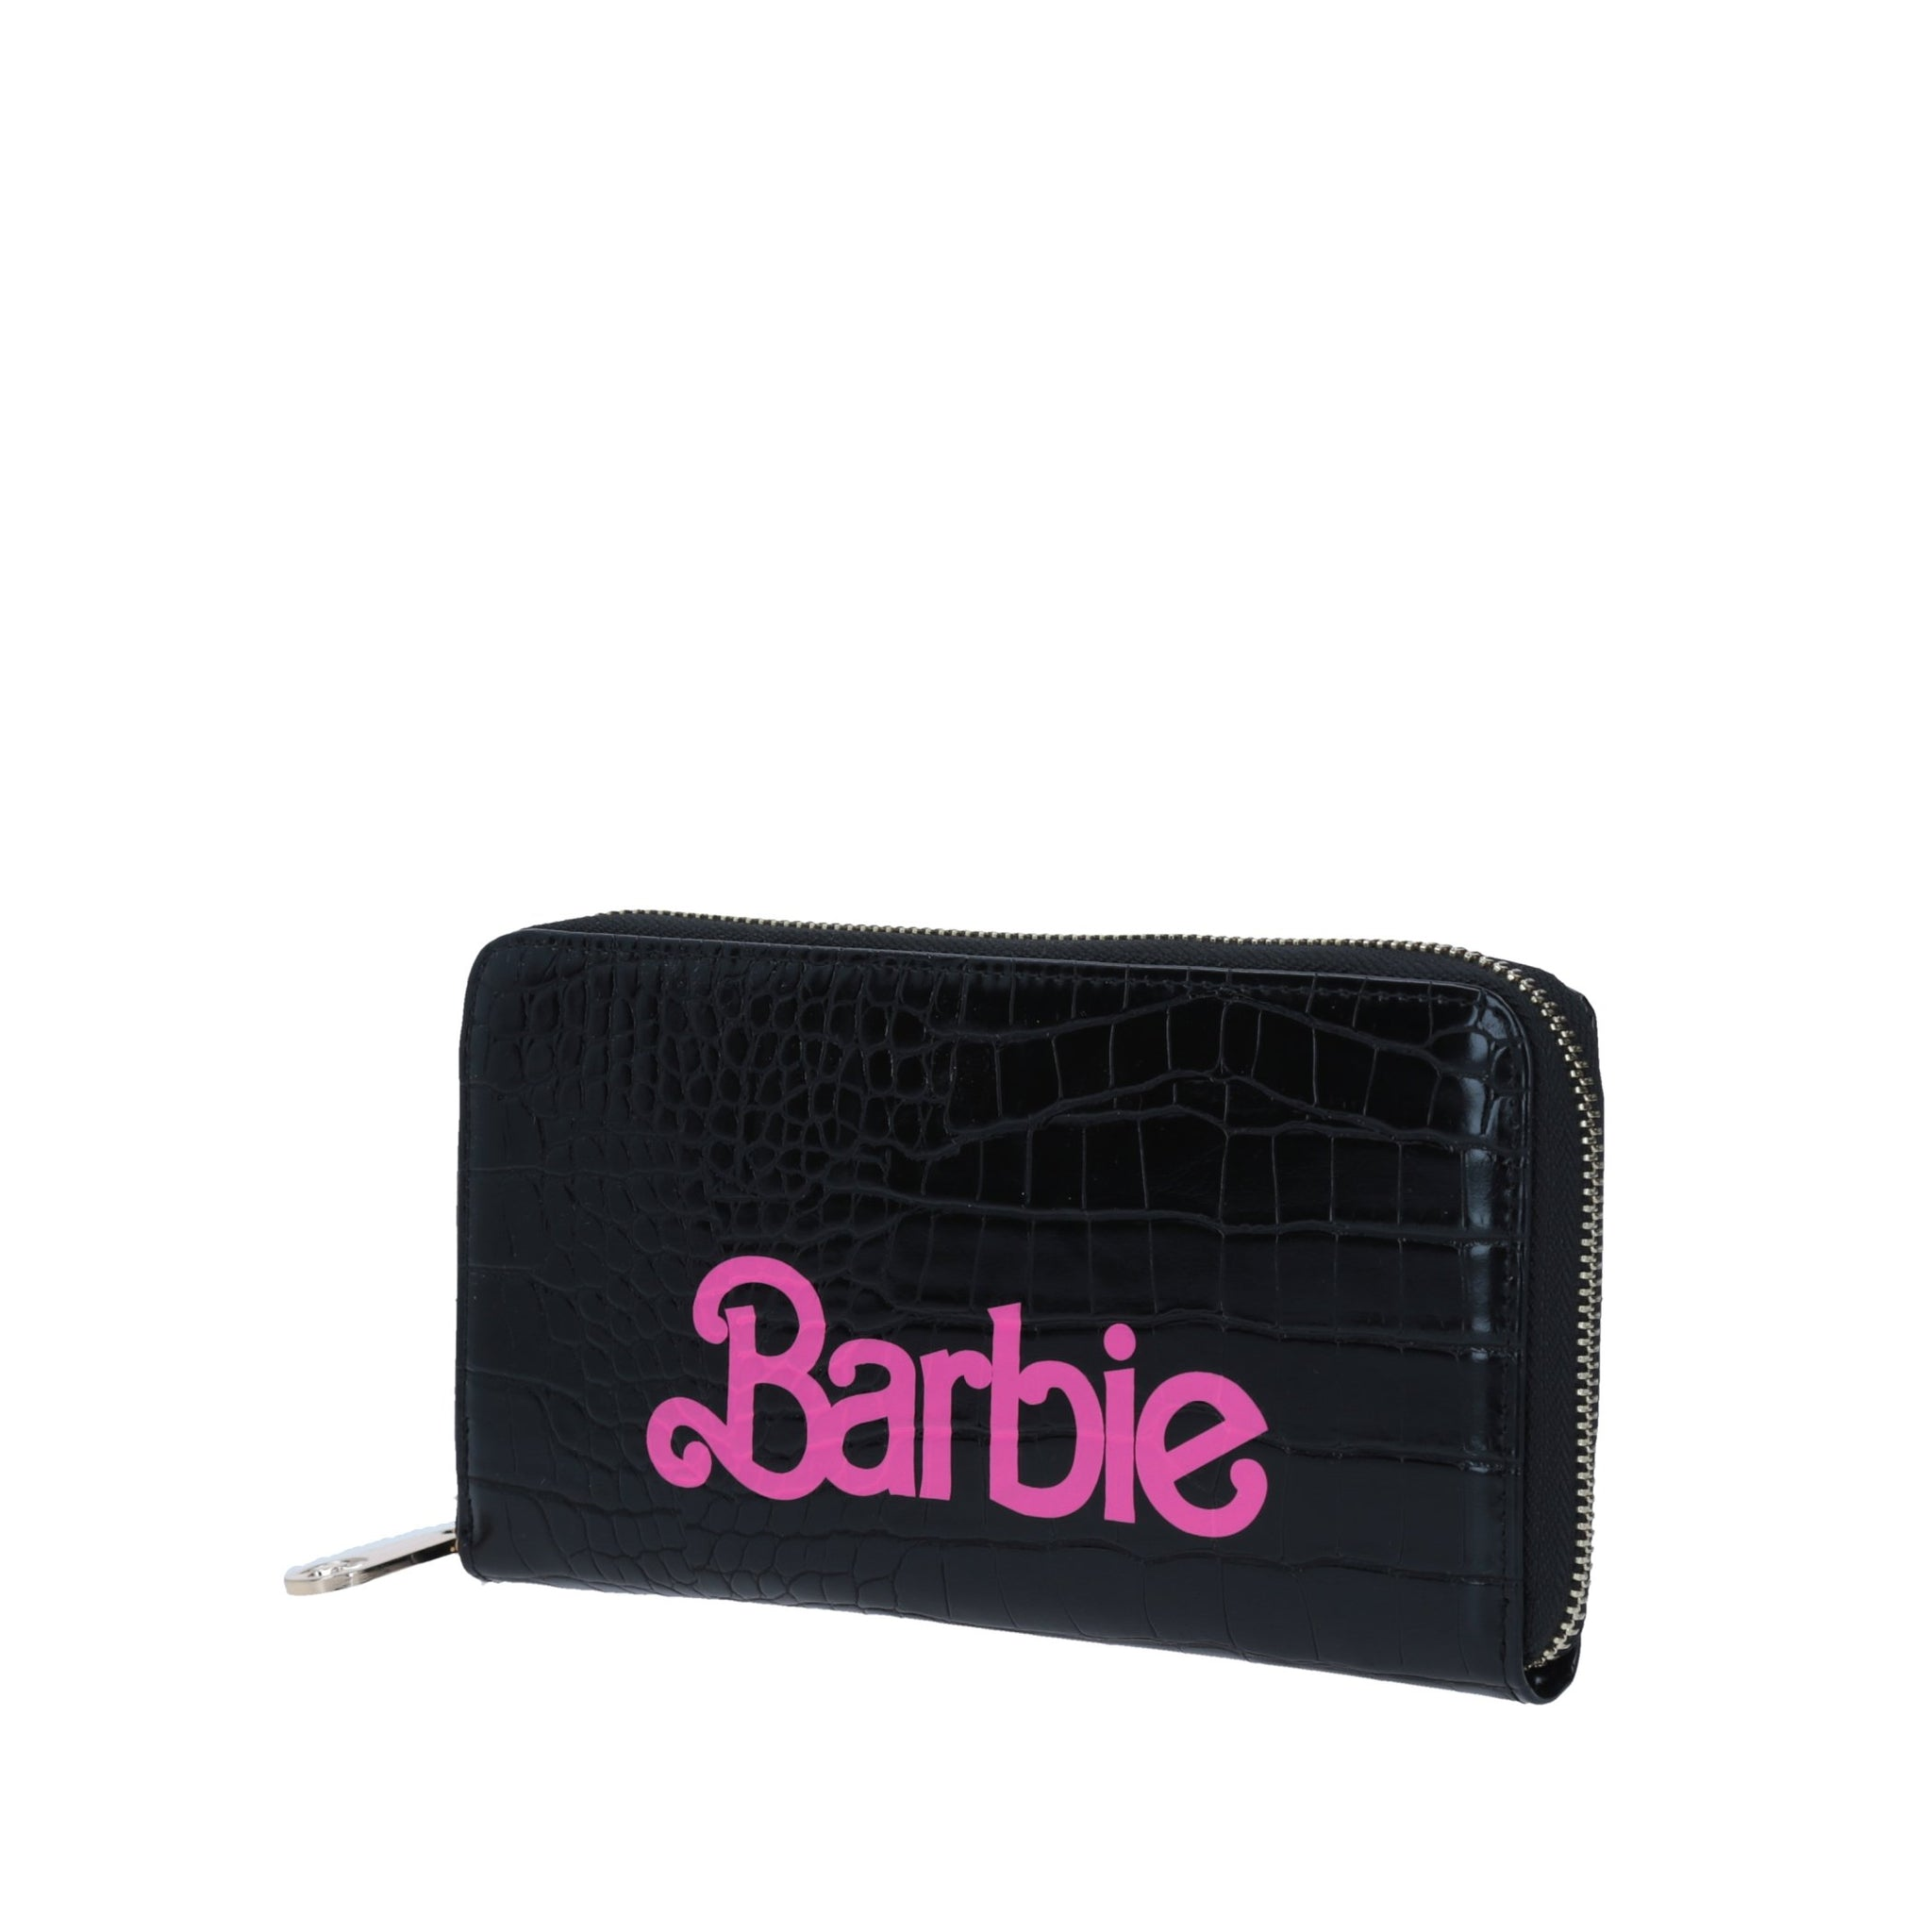 Cartera De Charol Barbie Color Negro